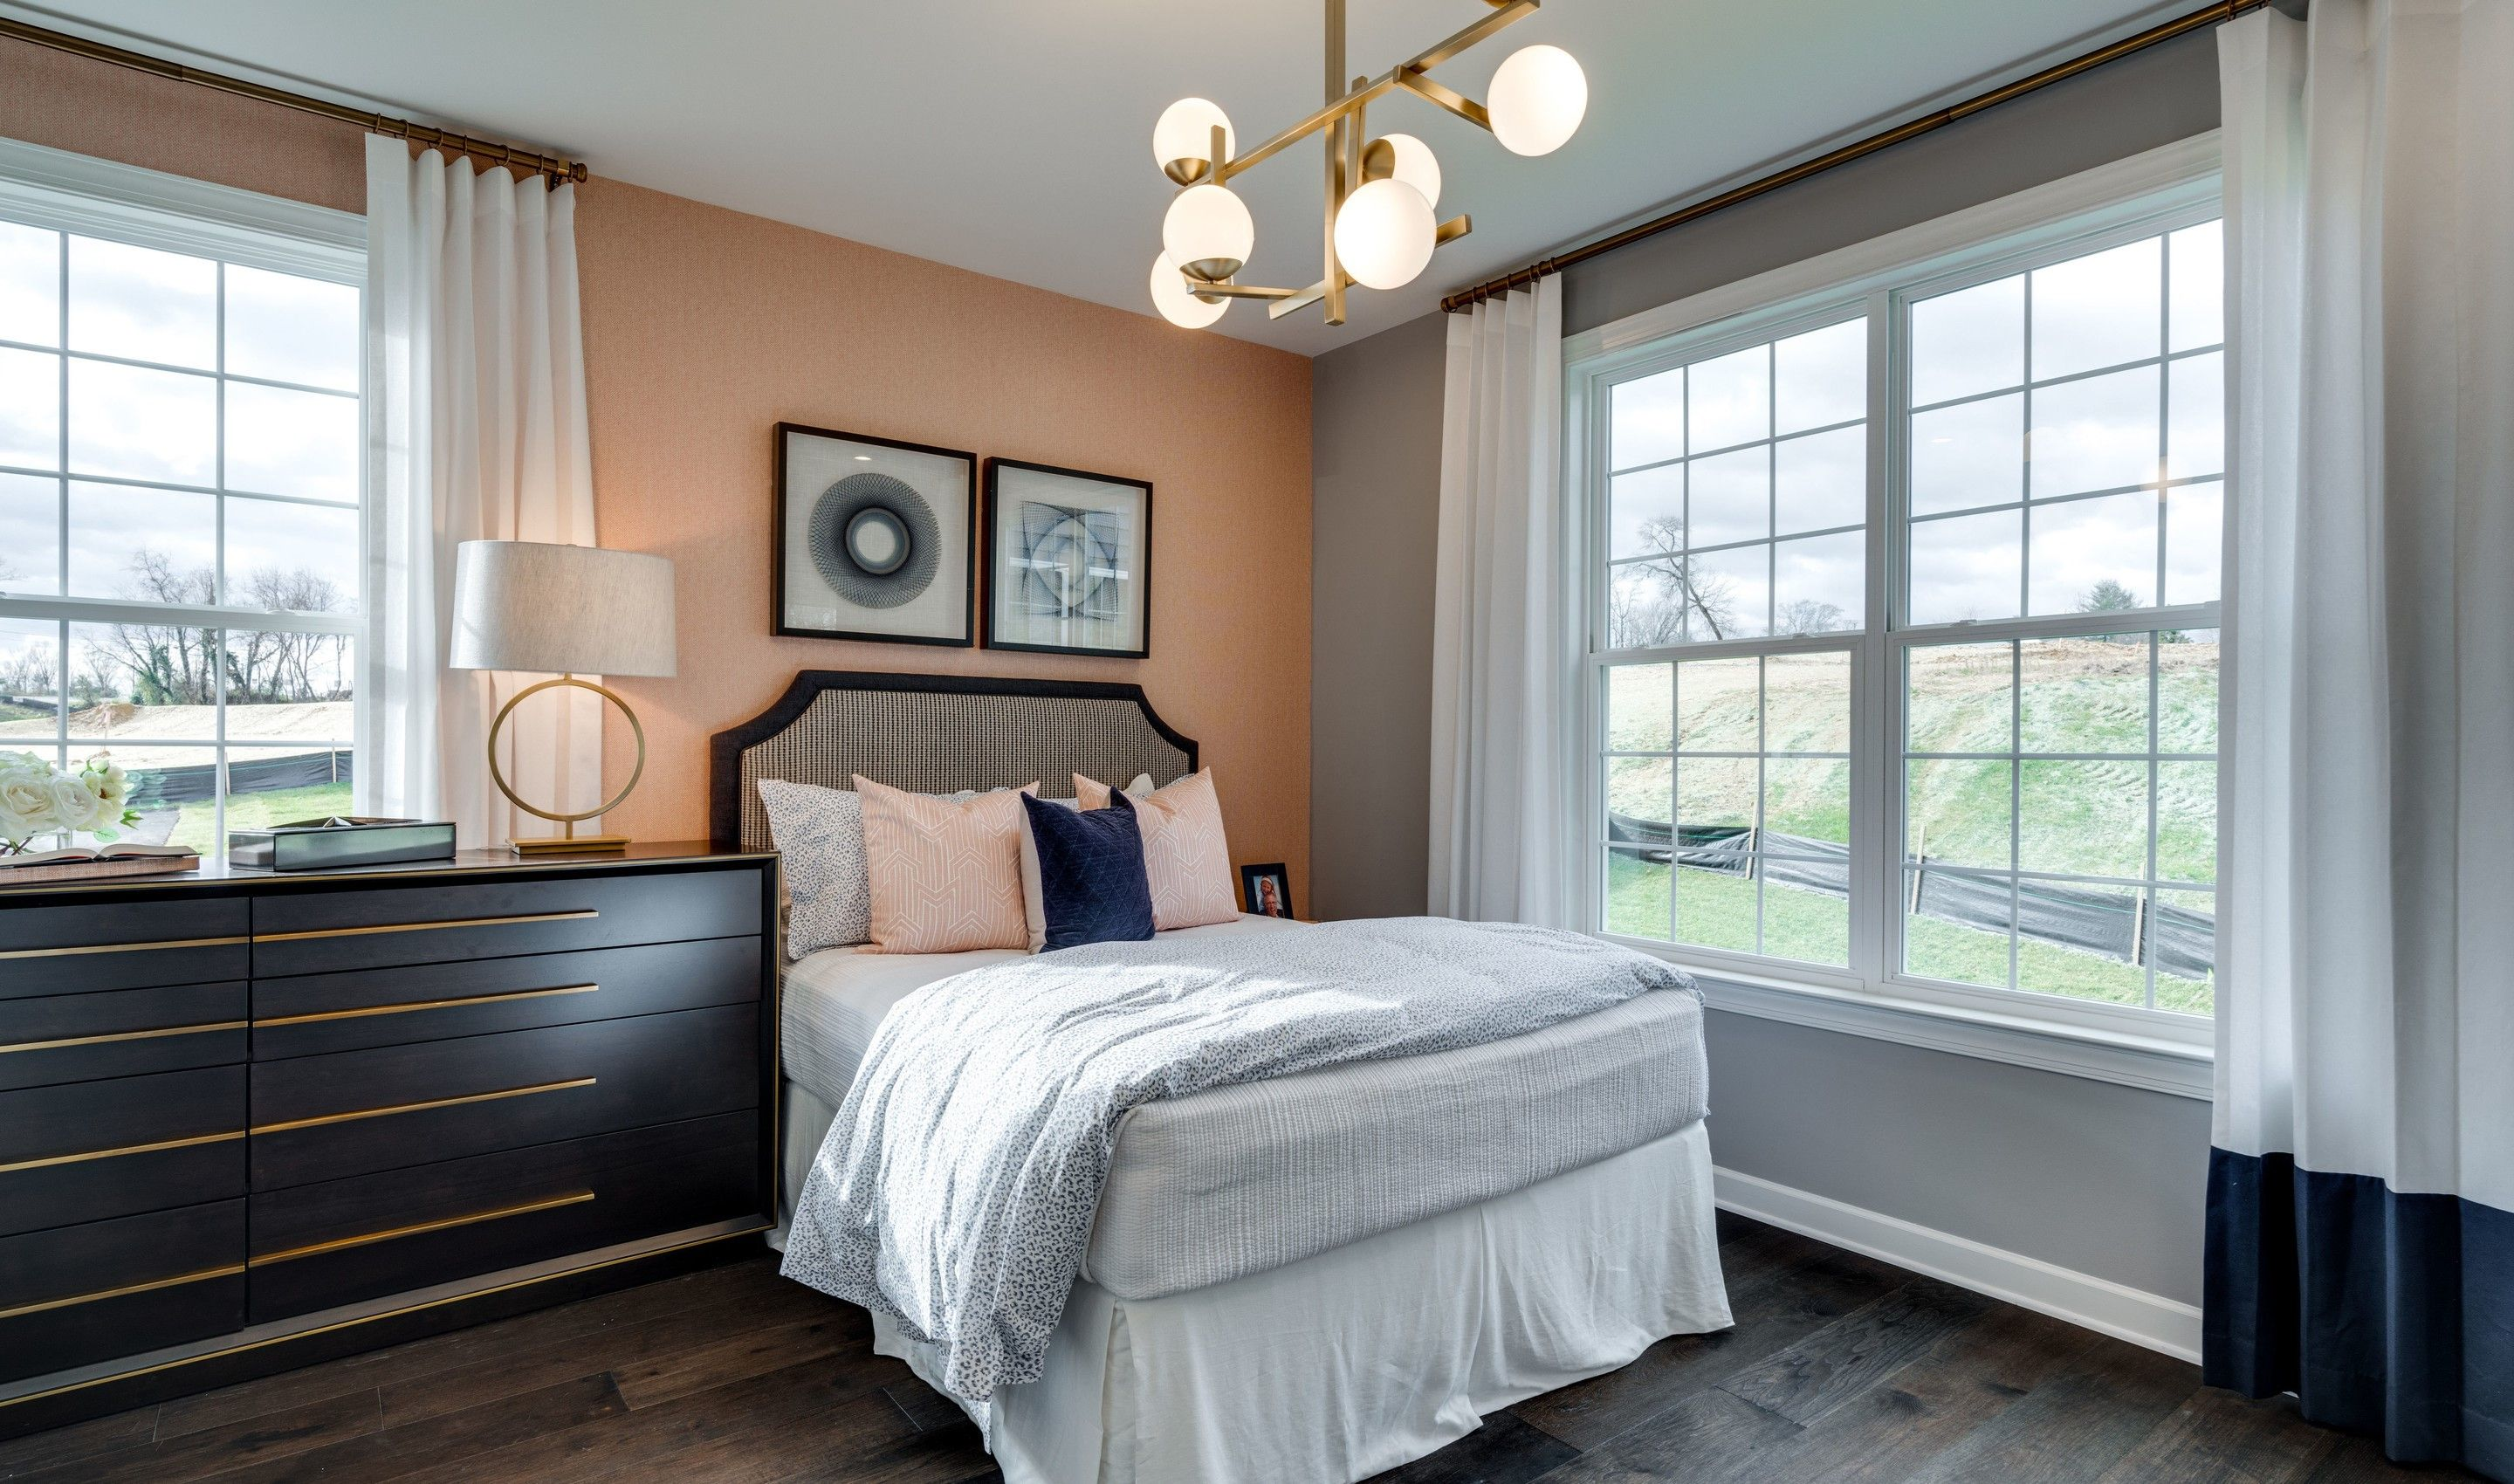 Bedroom featured in the Memphis II By K. Hovnanian® Homes in Washington, VA